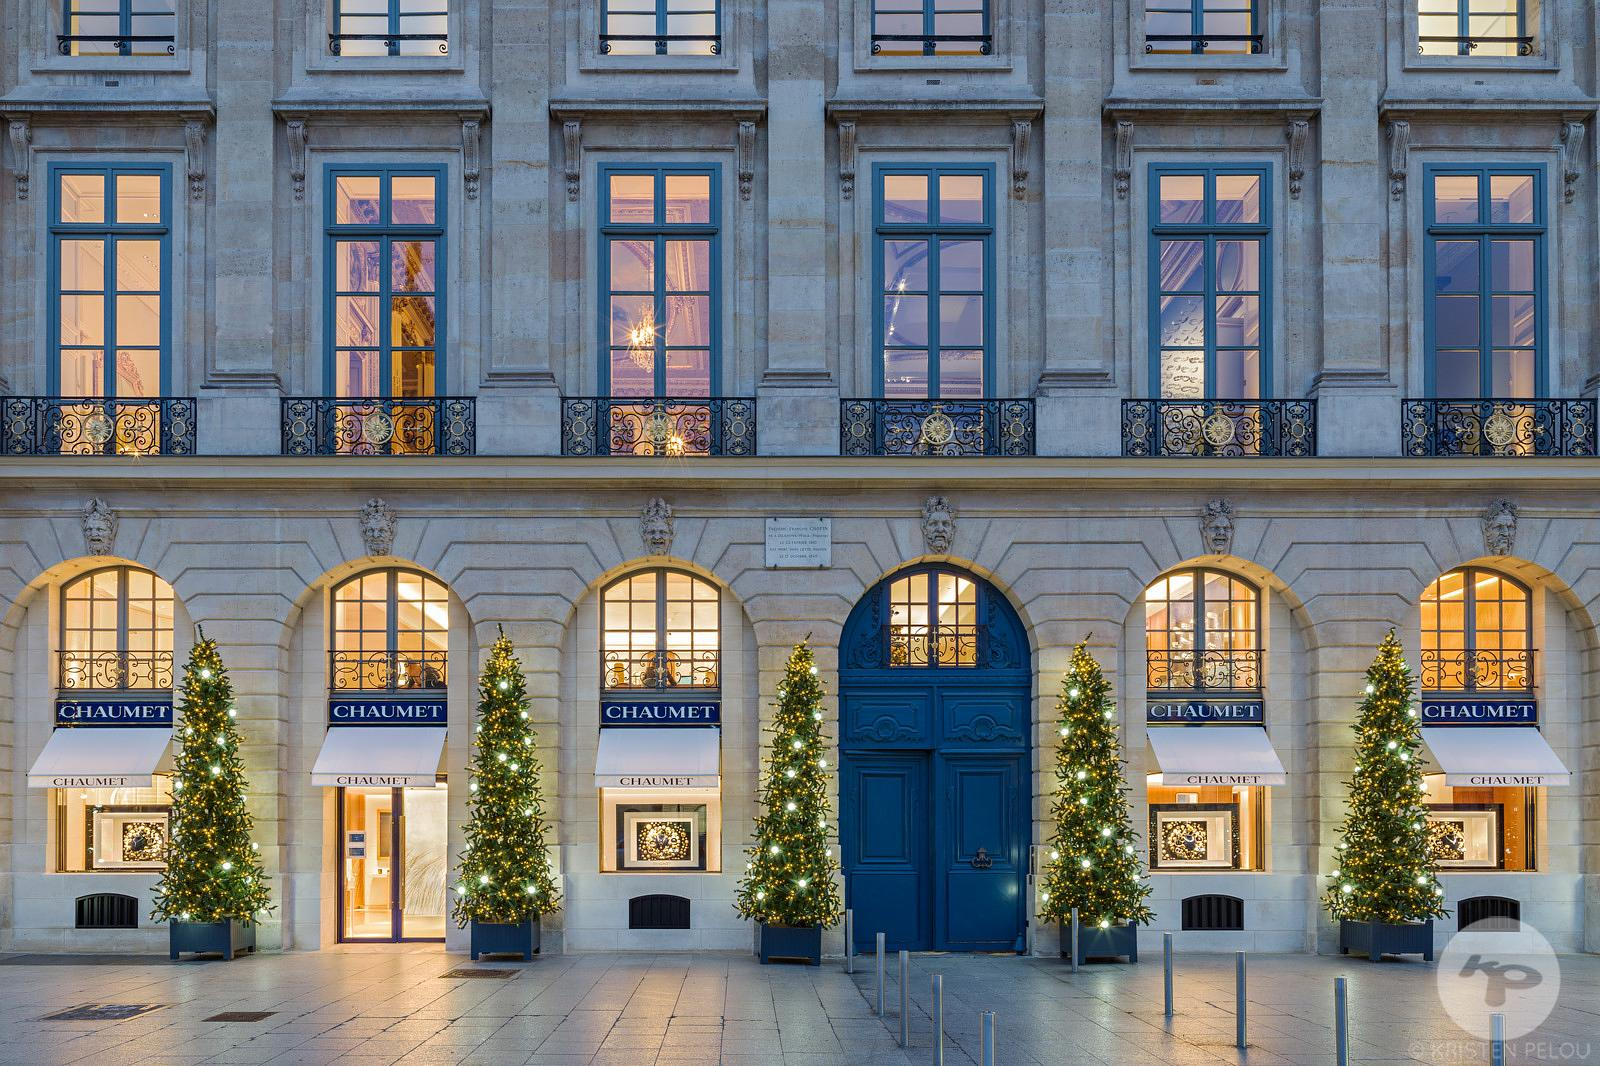 Retail architecture photographer Paris - CHAUMET PLACE VENDOME PARIS